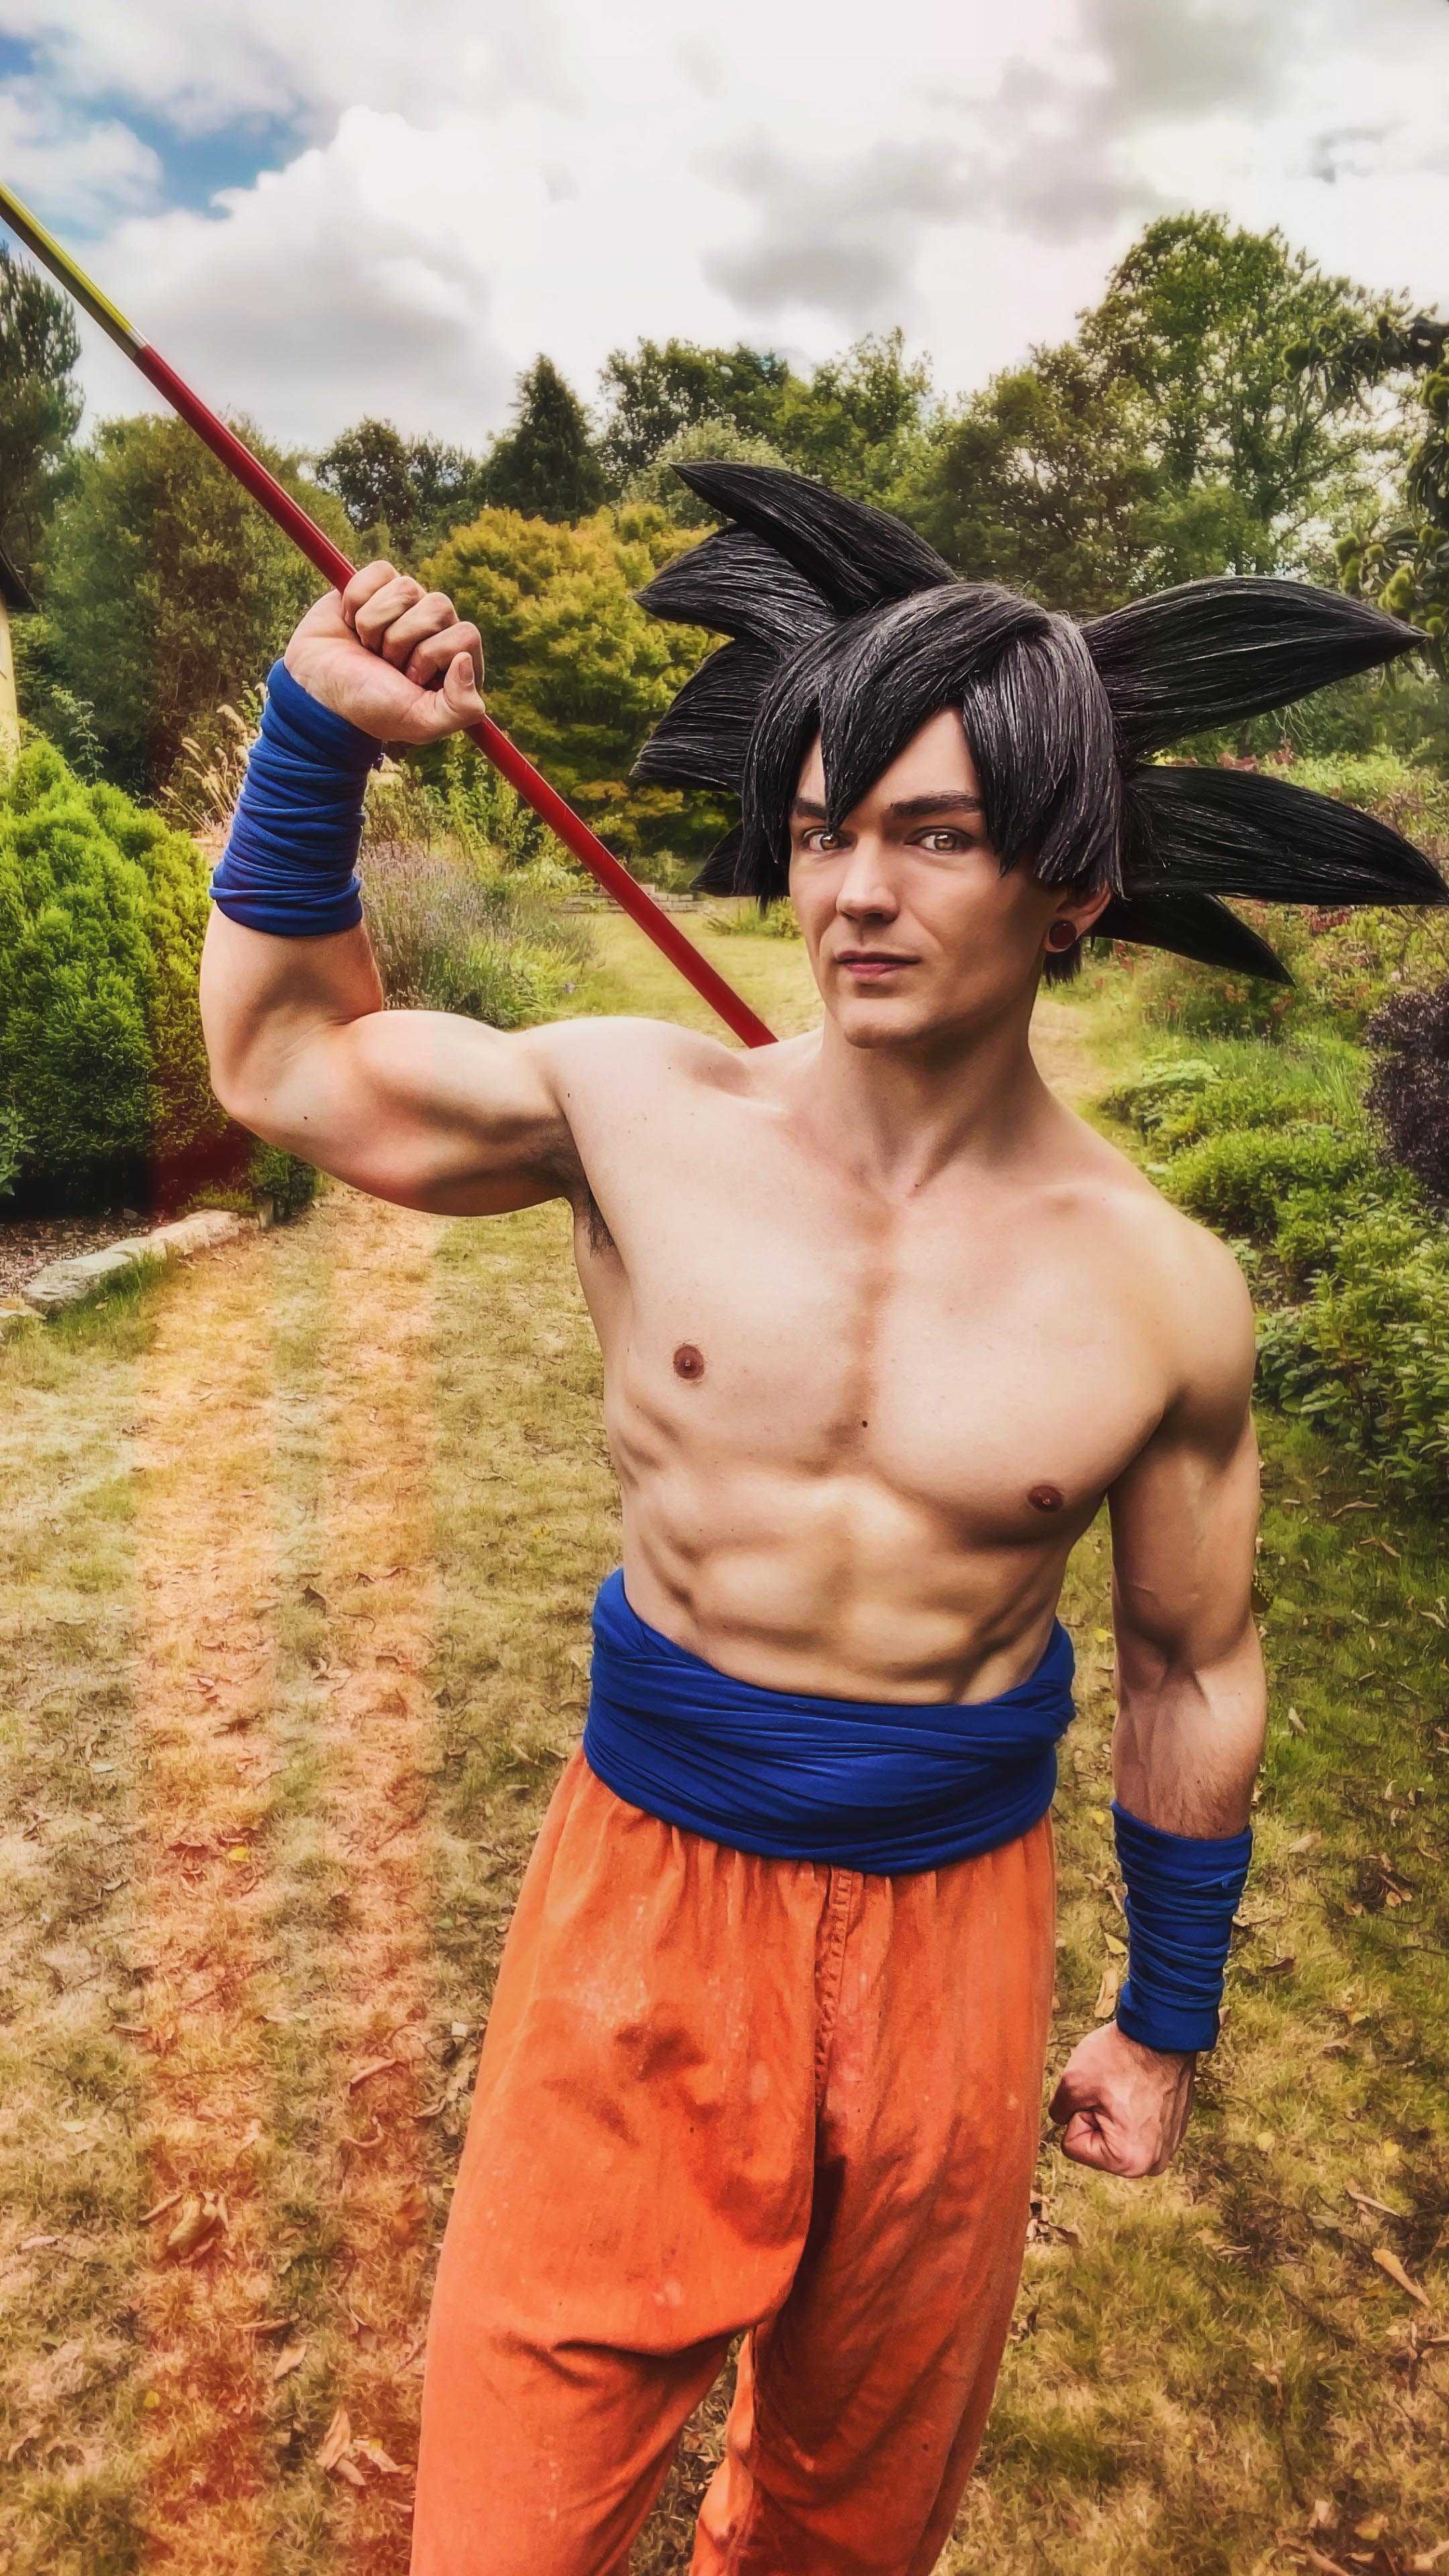 Topless Goku cosplay from Dragon Ball Z